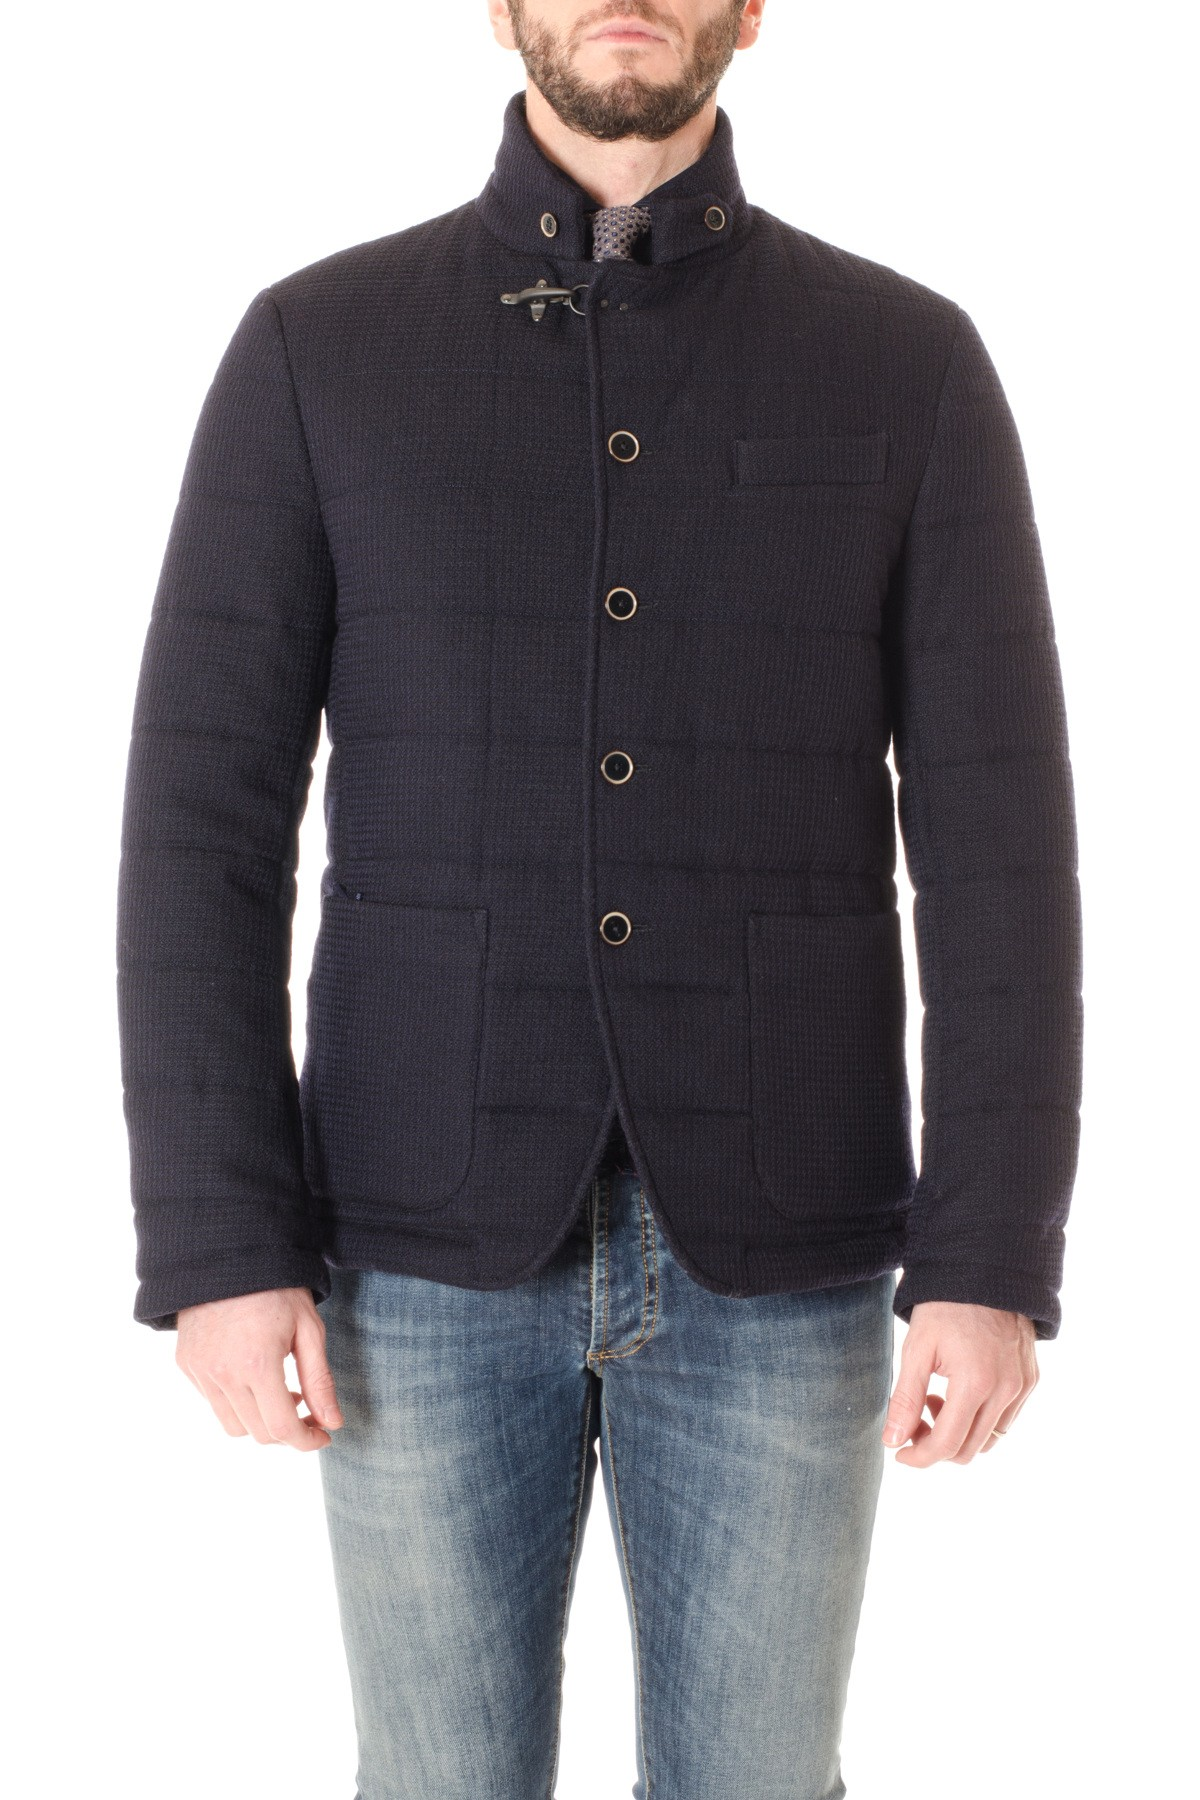 factory authentic b323a 114a2 FAY Blue jacket for men F/W 16/17